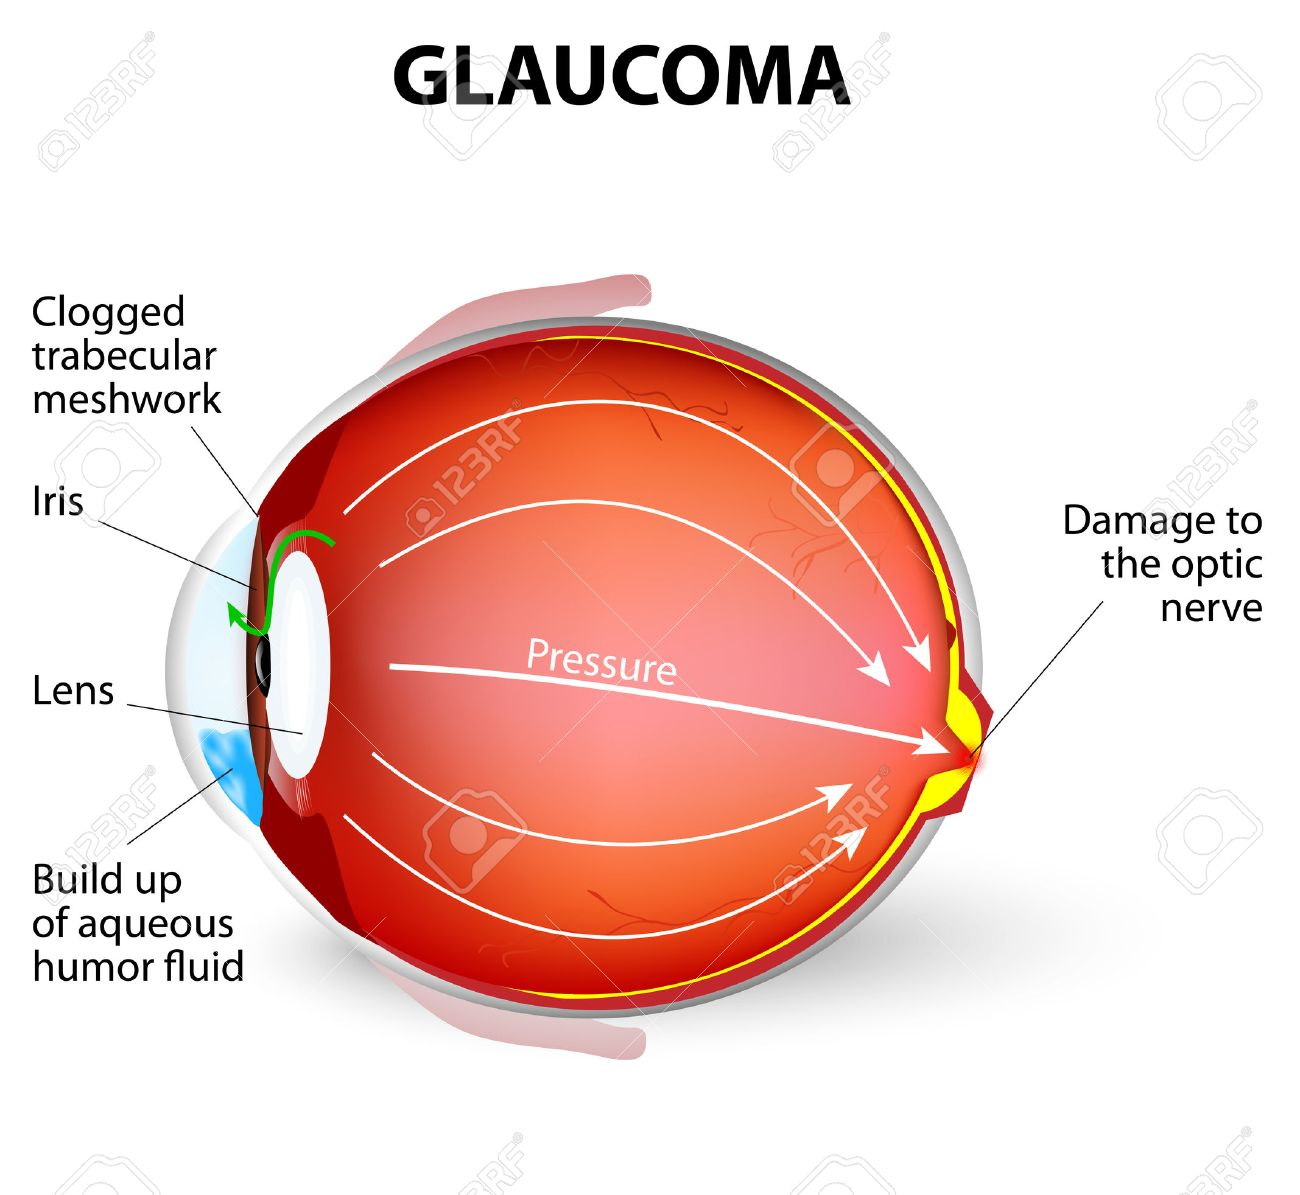 Glaucoma Is An Eye Disease And A Leading Cause Of Blindness The Optic Nerve